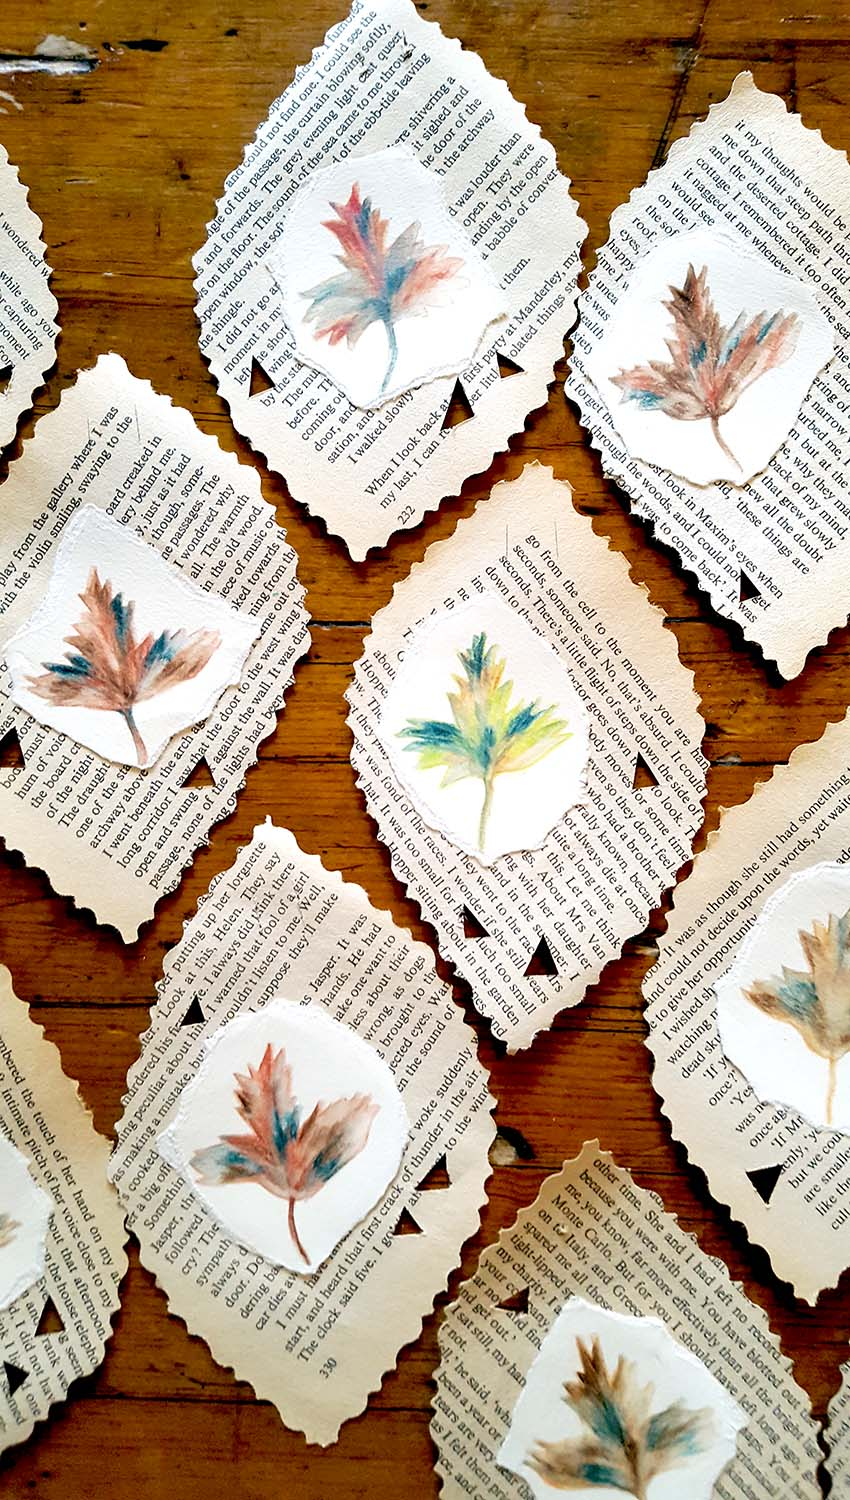 Paper Leaves in the making of a 'Leafology', Book Art, Lumb Bank, October 16